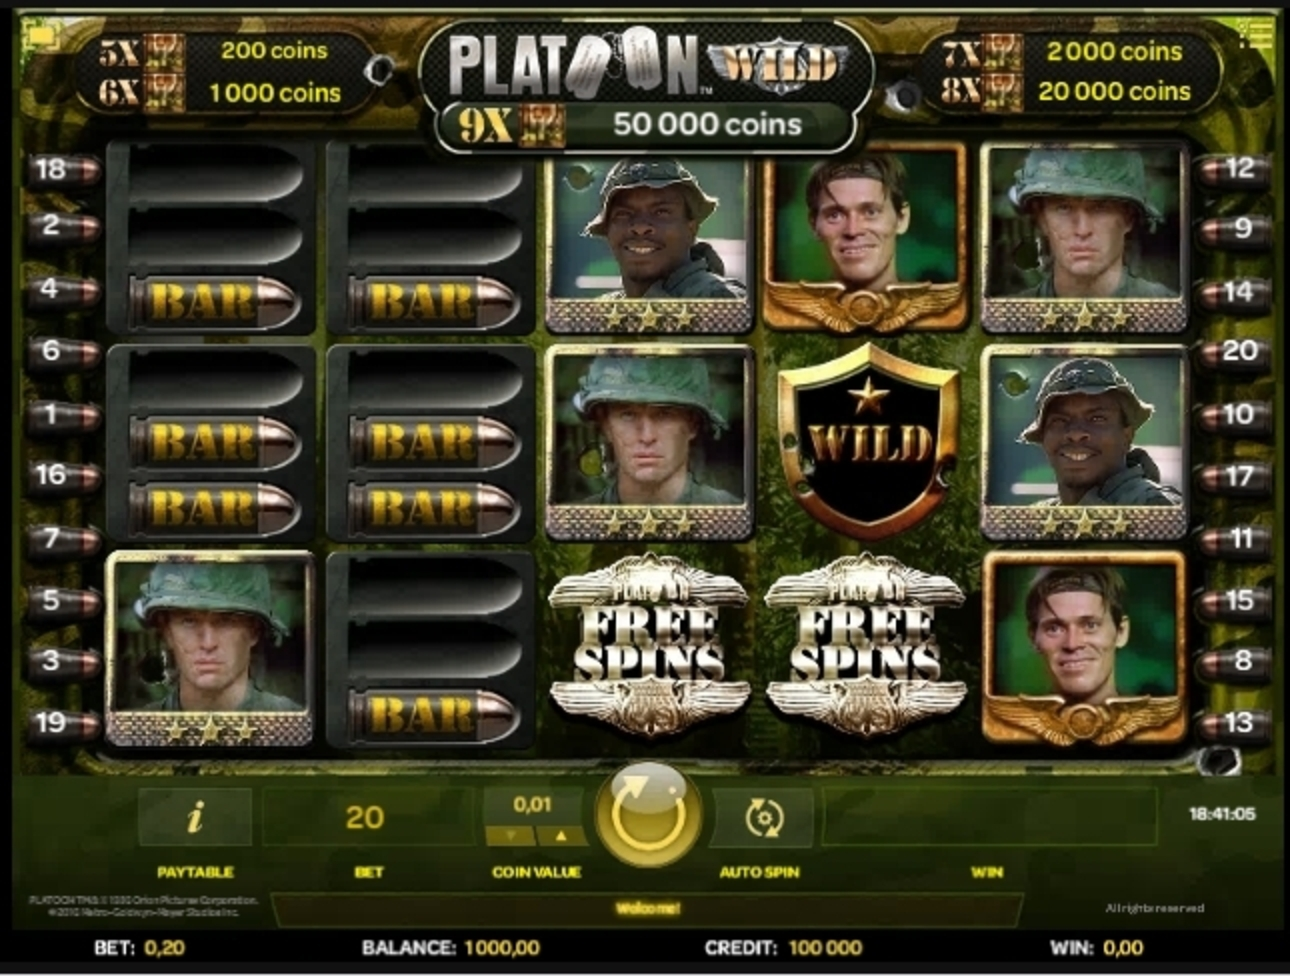 Reels in Platoon Wild Slot Game by iSoftBet